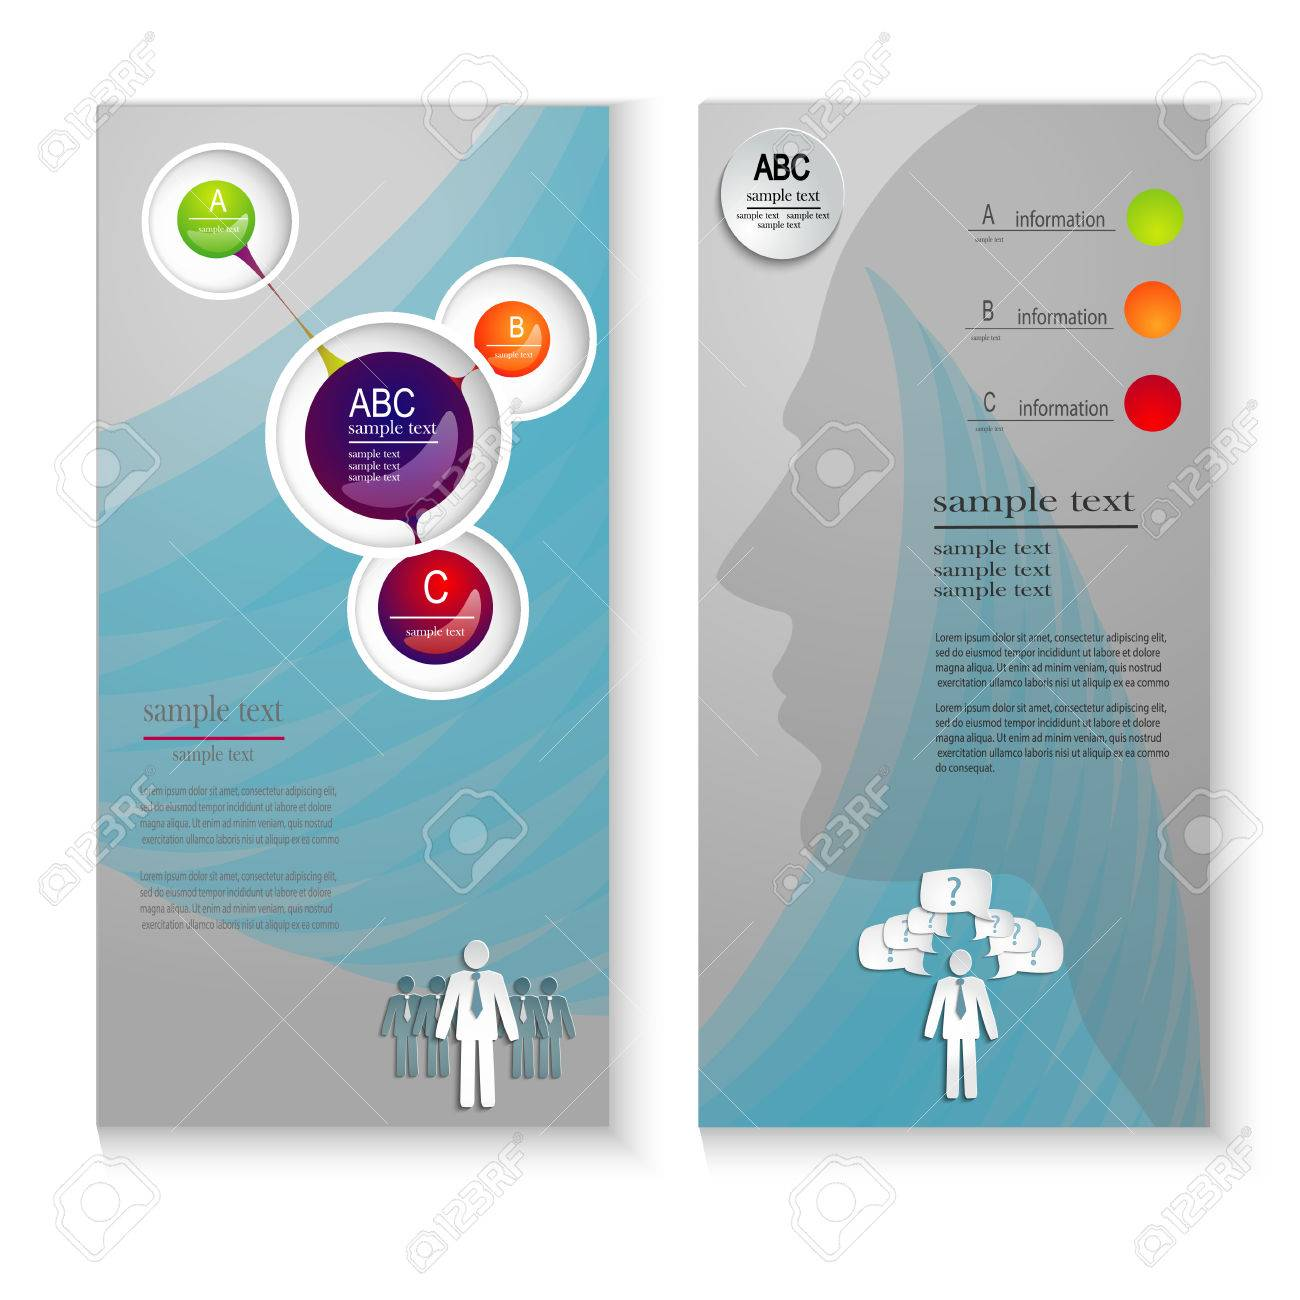 Information Flyer Template. professional business flyer template or ...